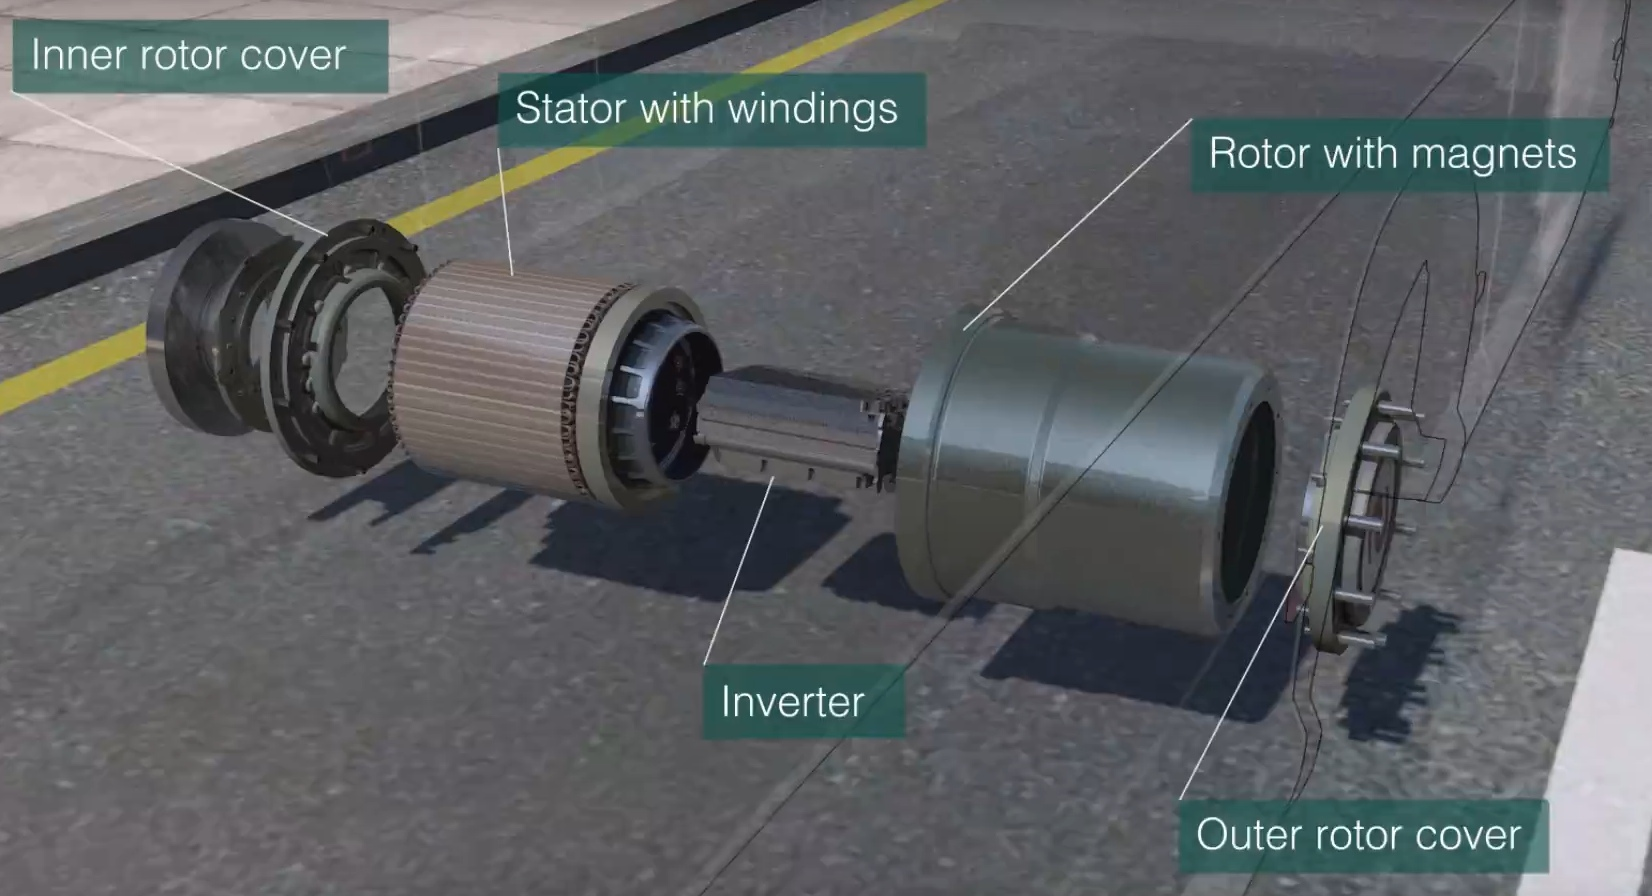 etraction_outer_rotor_whub.jpg